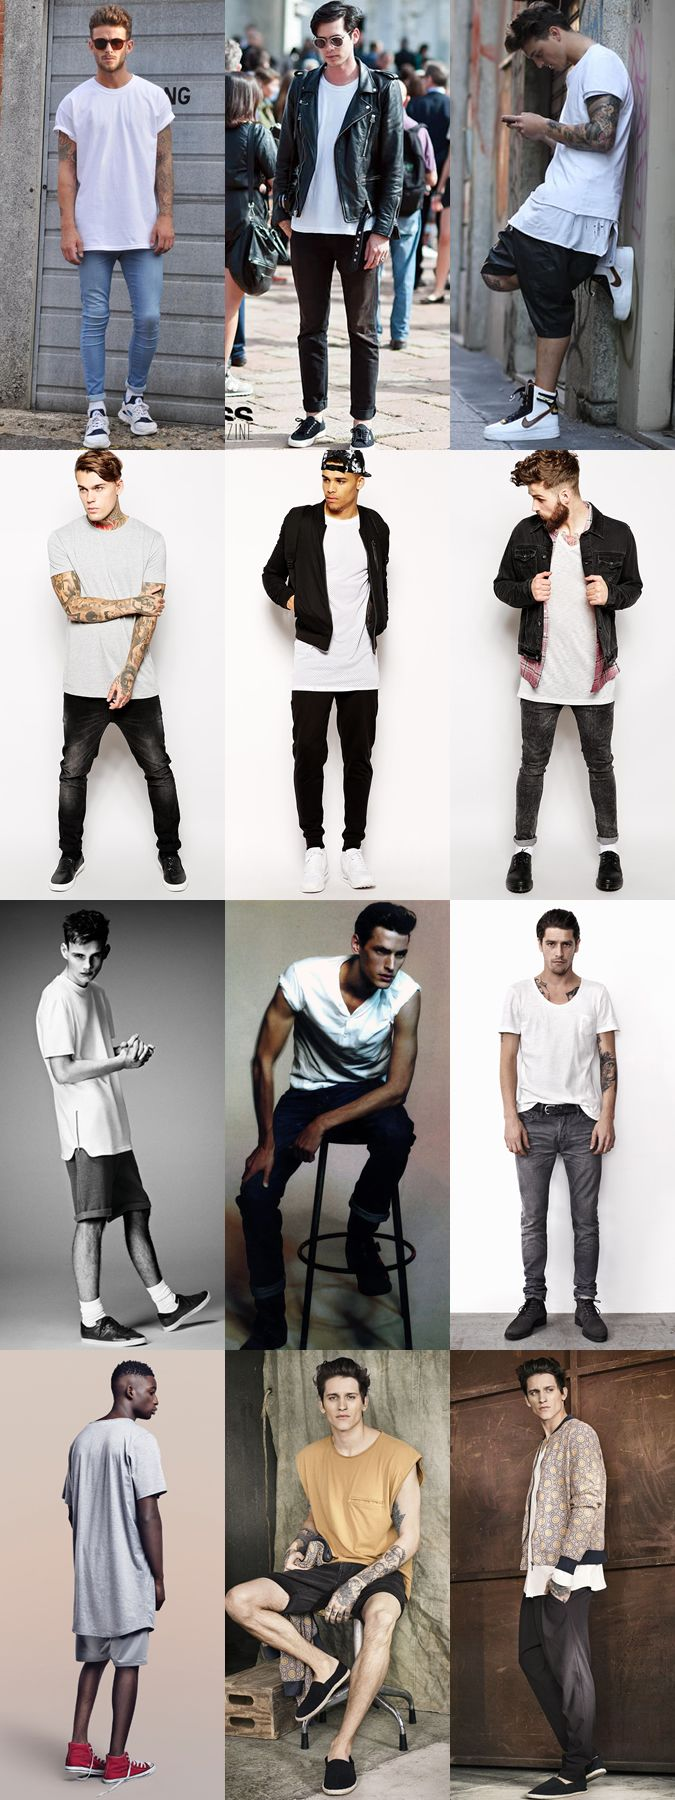 Men's Summer Daring Fashion Trends: The Oversized Tee Lookbook Inspiration